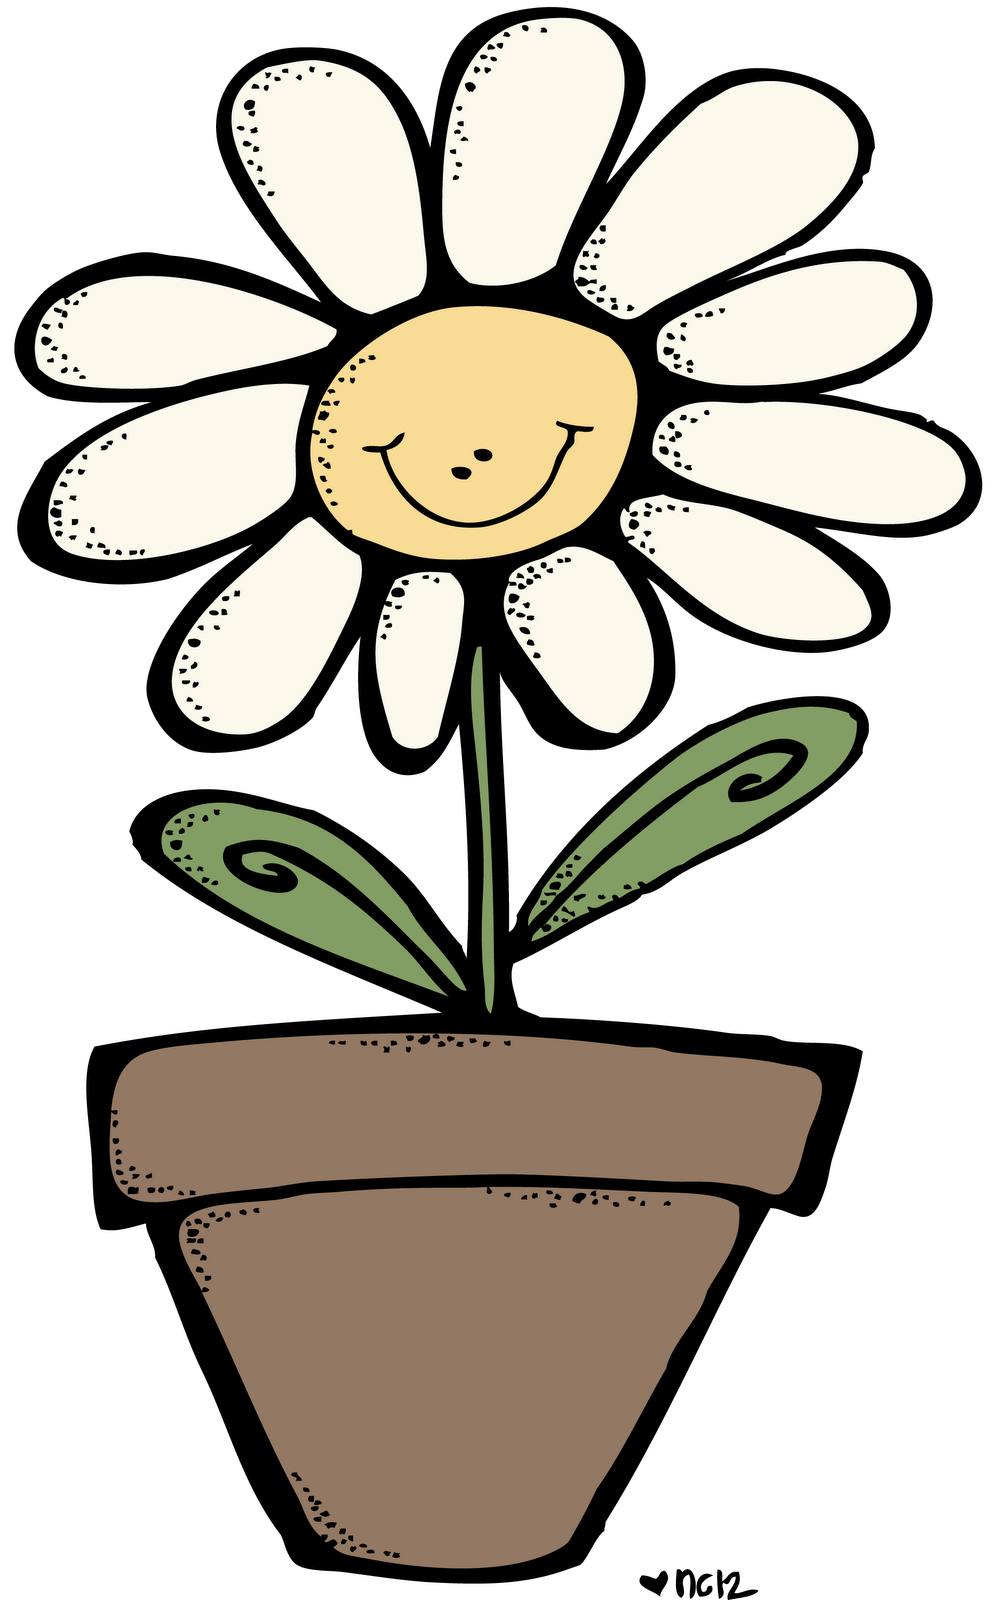 Smiling flower clipart picture free library MelonHeadz: Some days we just need to smile! picture free library